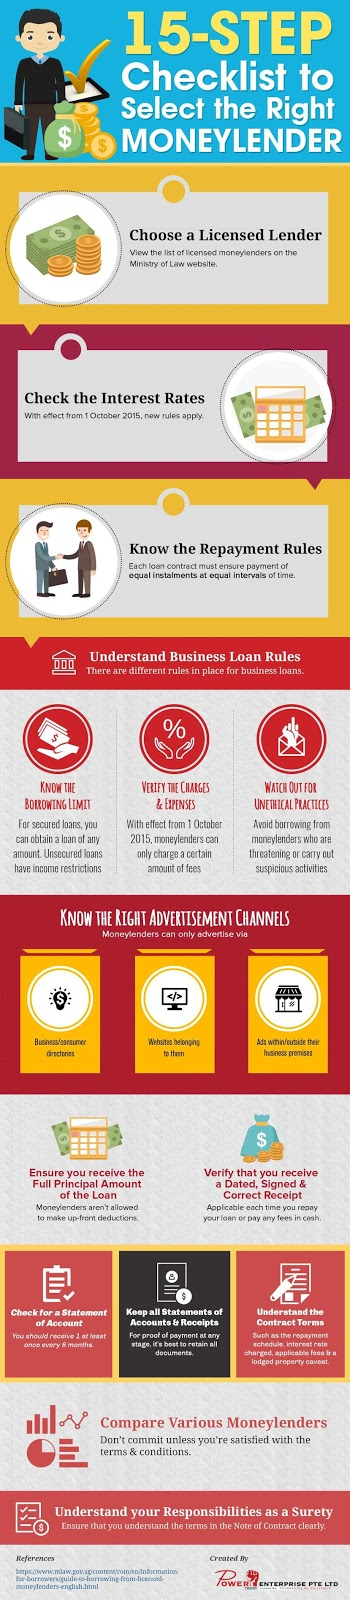 15-Step Checklist to Select the Right Moneylender - Viral Media